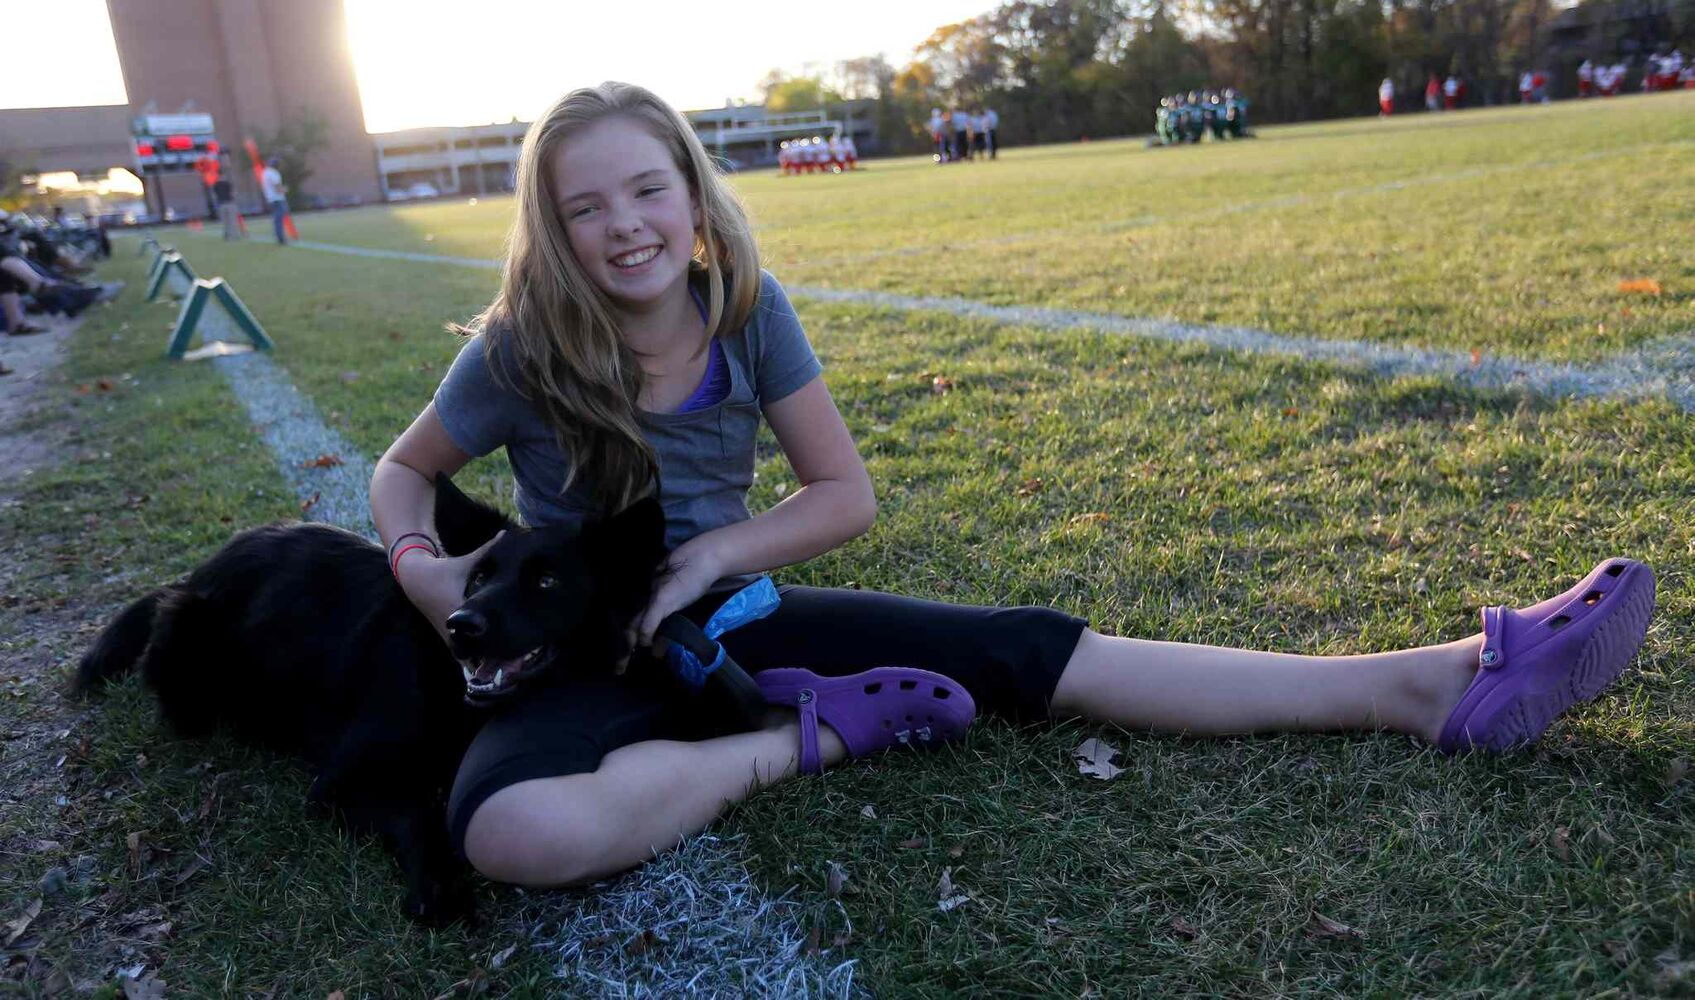 Hannah Hudson, 12, and her dog Molly watch the game from the sideline. (TREVOR HAGAN / WINNIPEG FREE PRESS)